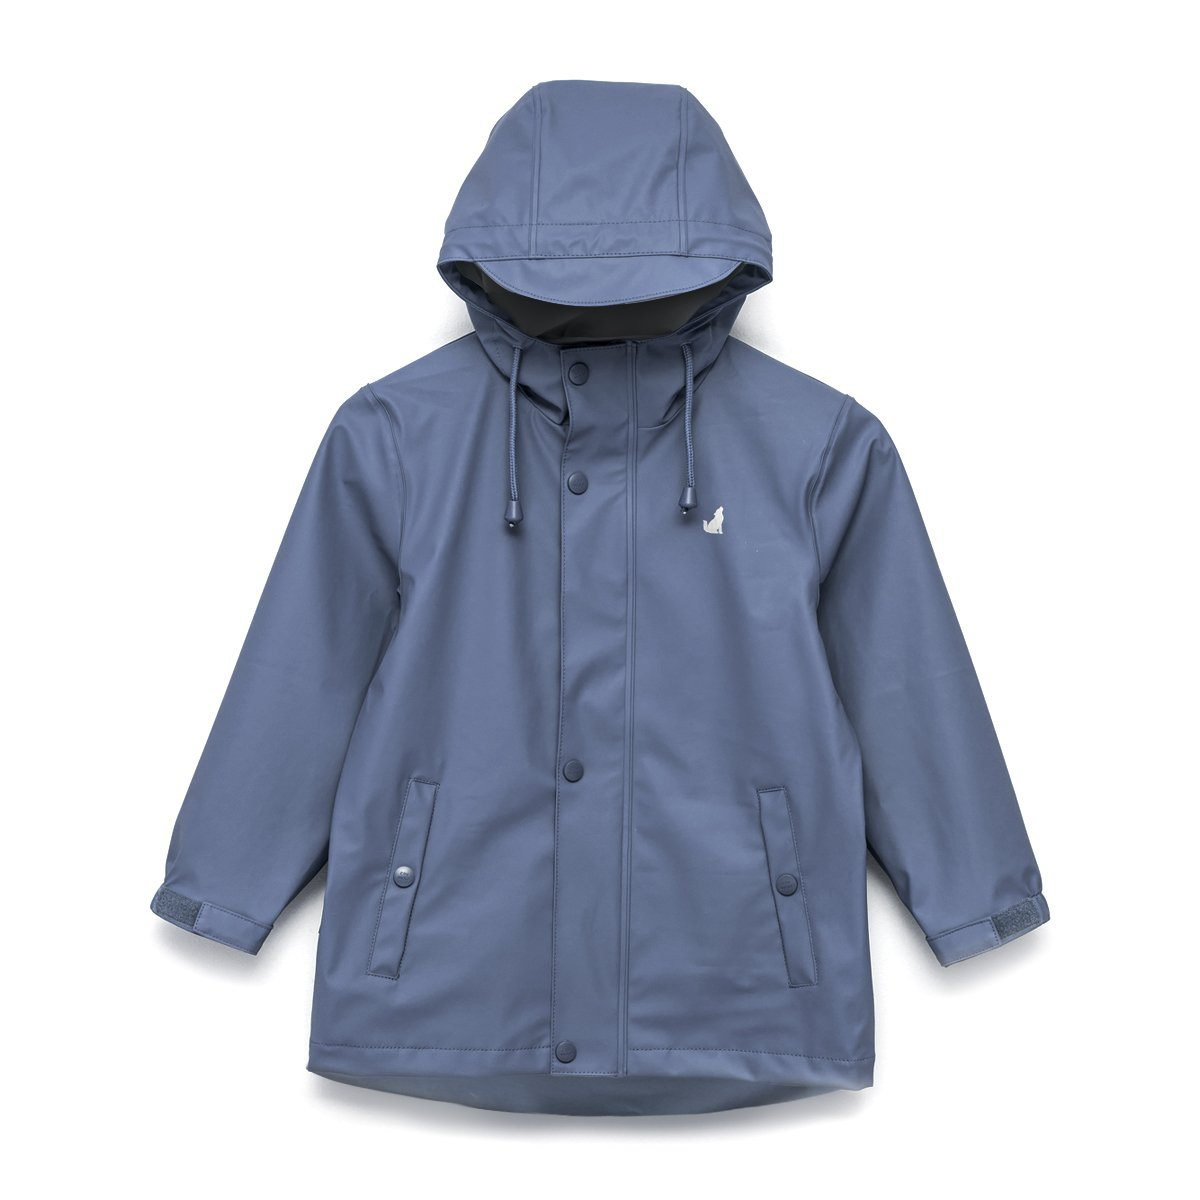 Adults Play Jacket (Indigo)